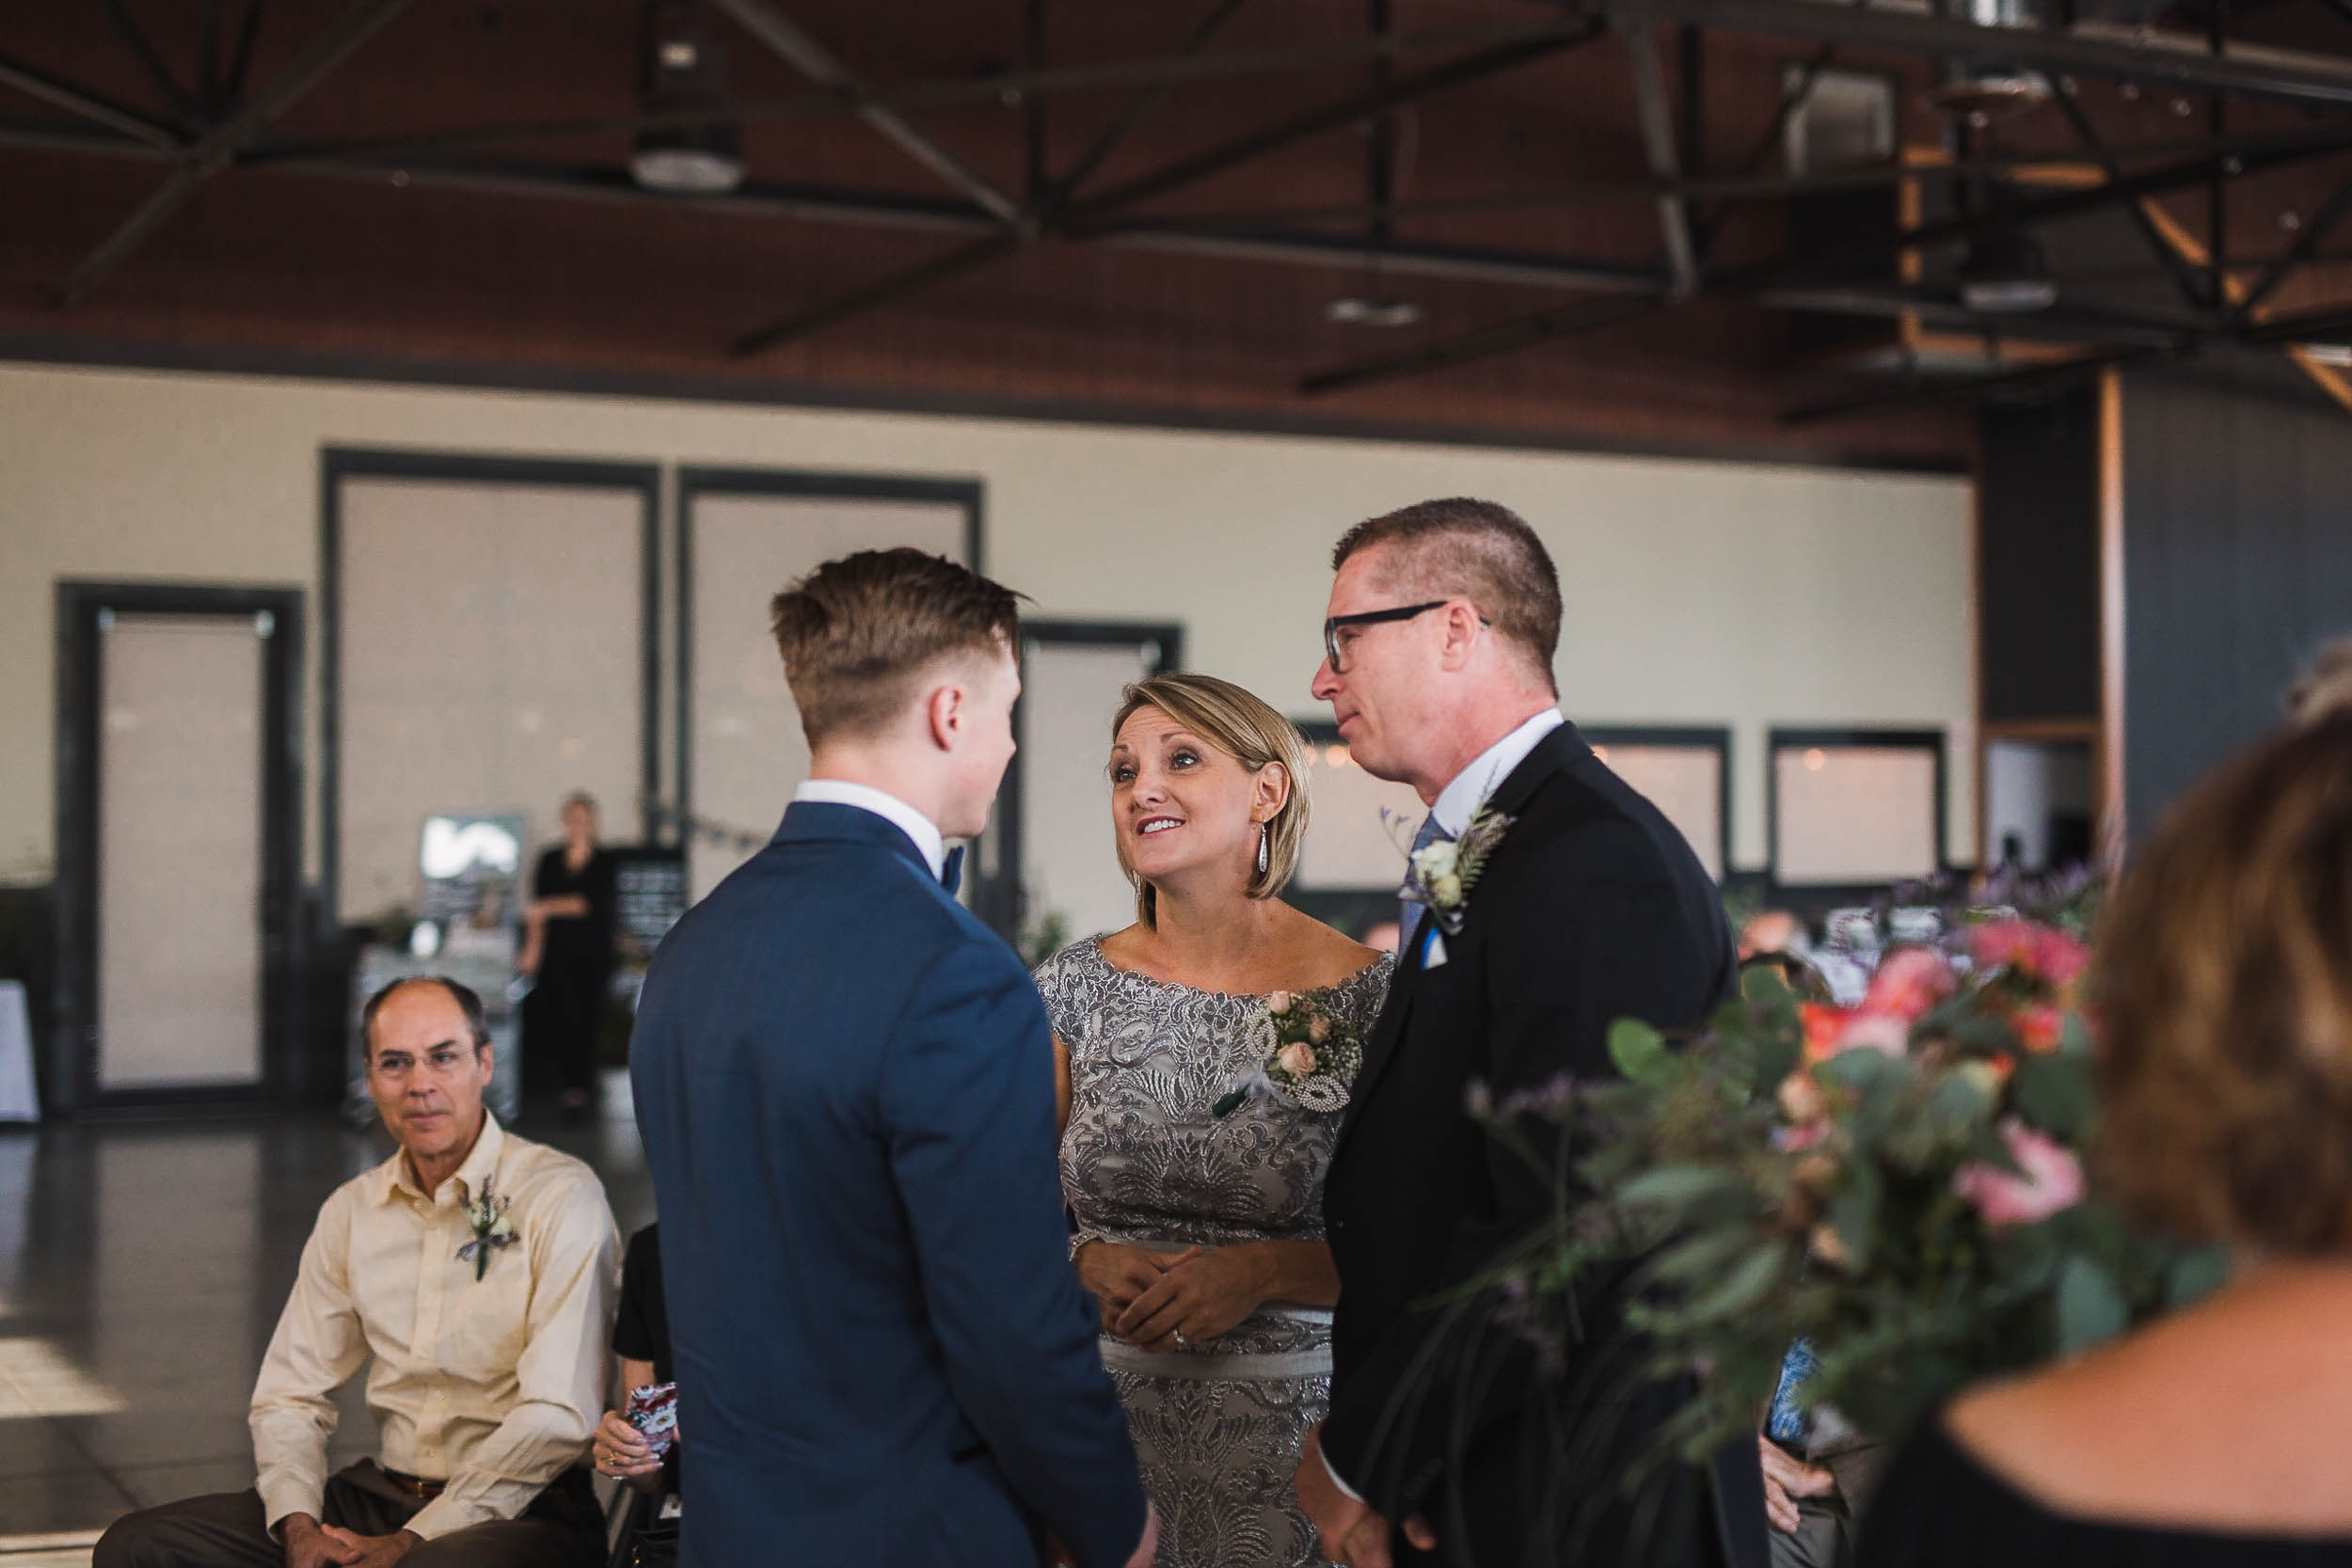 Groom and his parents at the ceremony